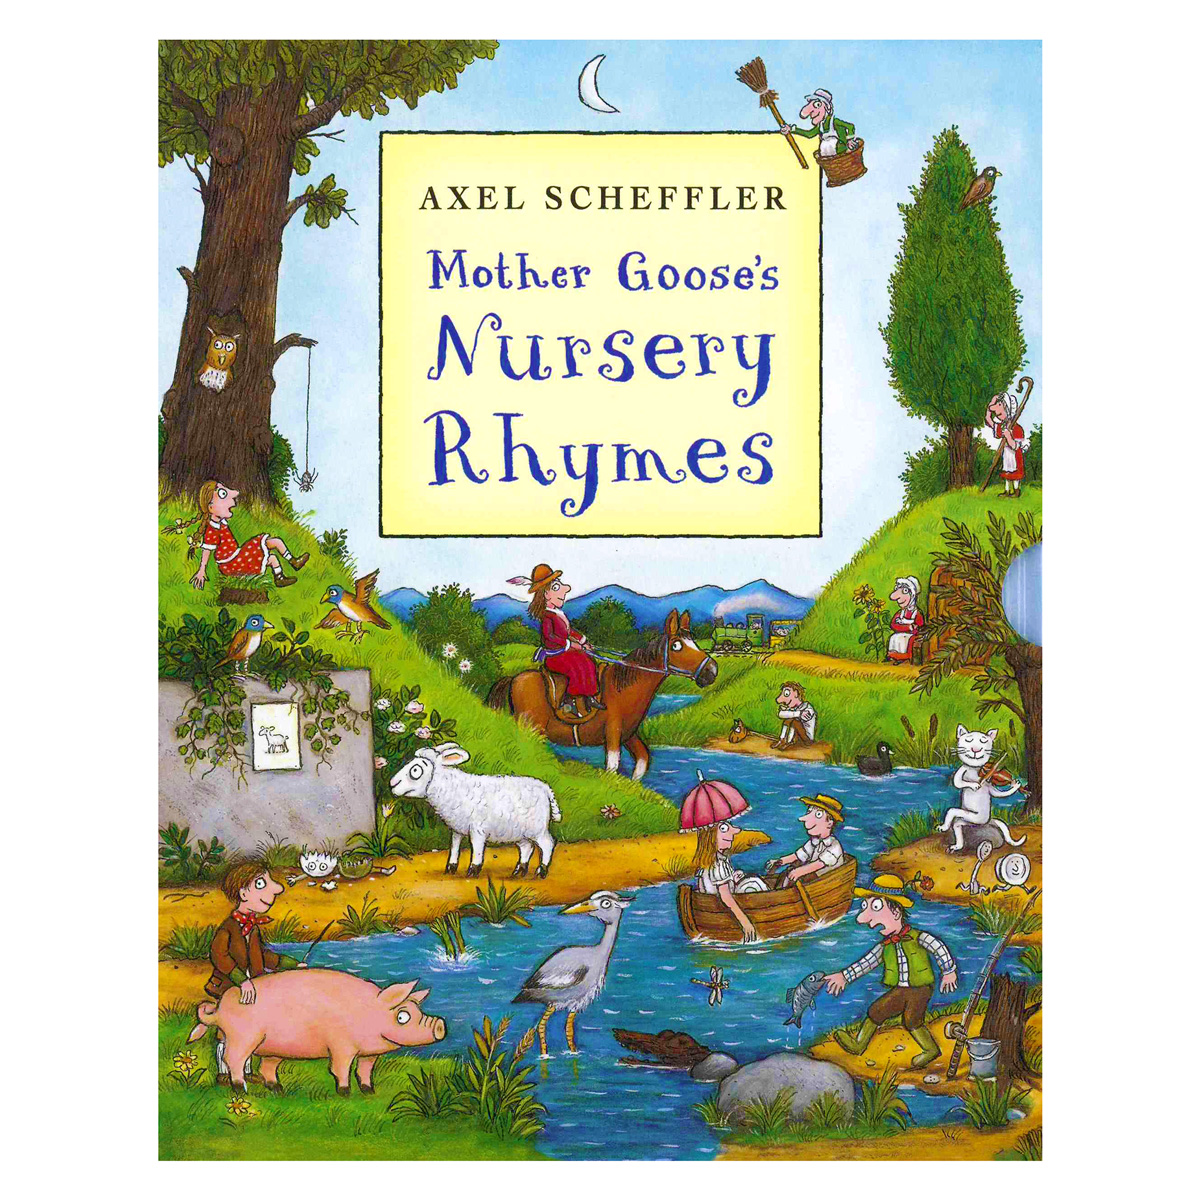 4 Images of Printable Mother Goose Nursery Rhymes Book